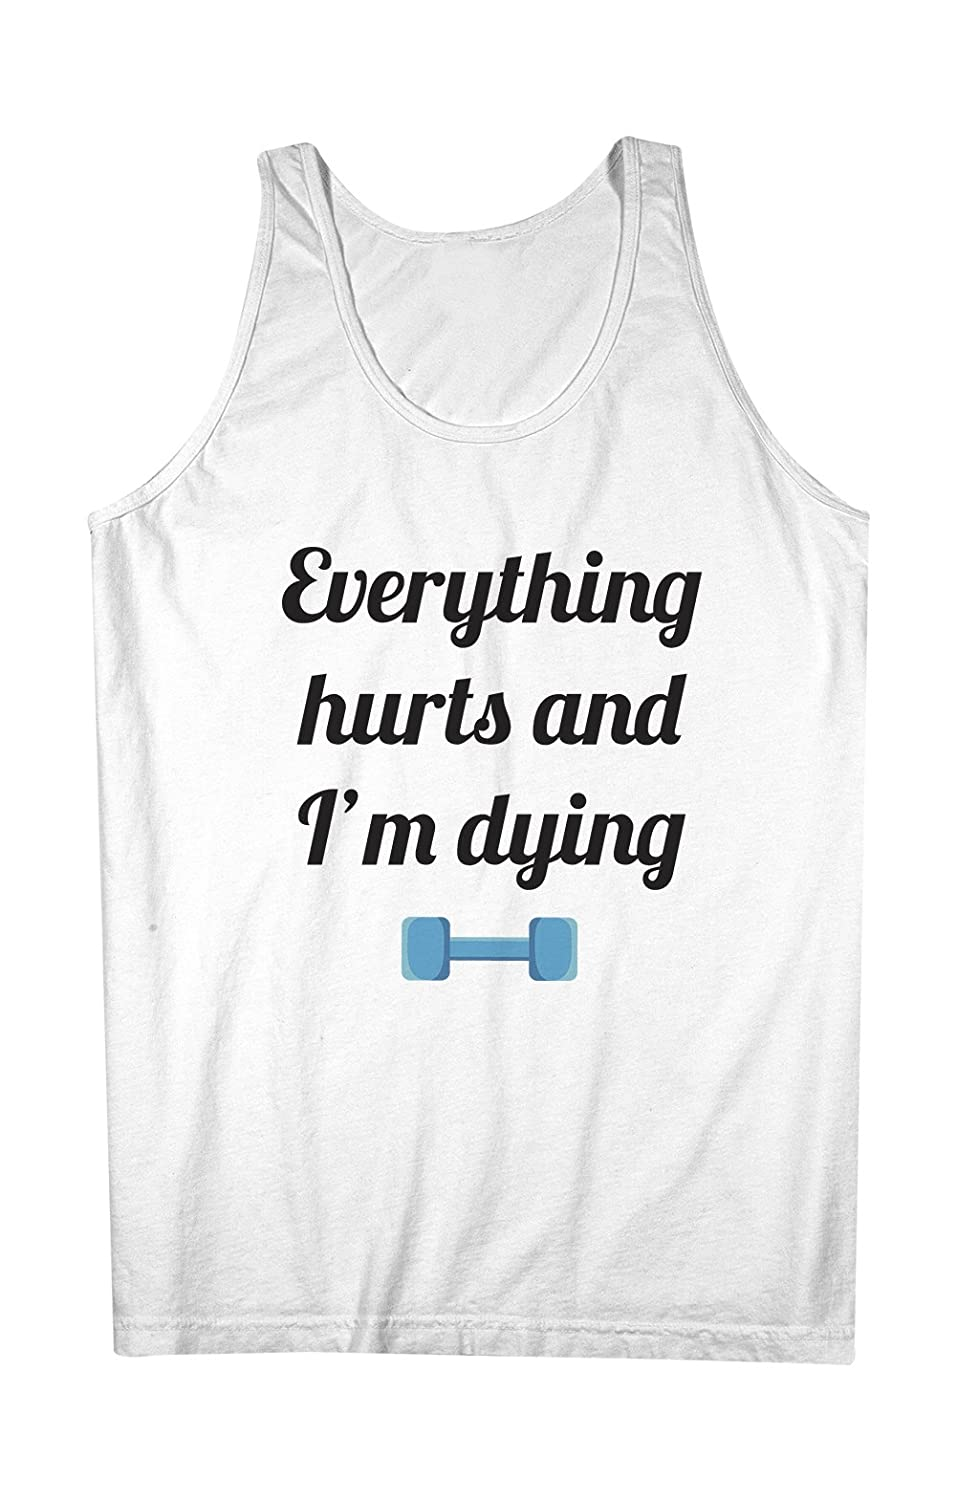 Everything Hurts And I'm Dying Gym Sport Fit 男性用 Tank Top Sleeveless Shirt